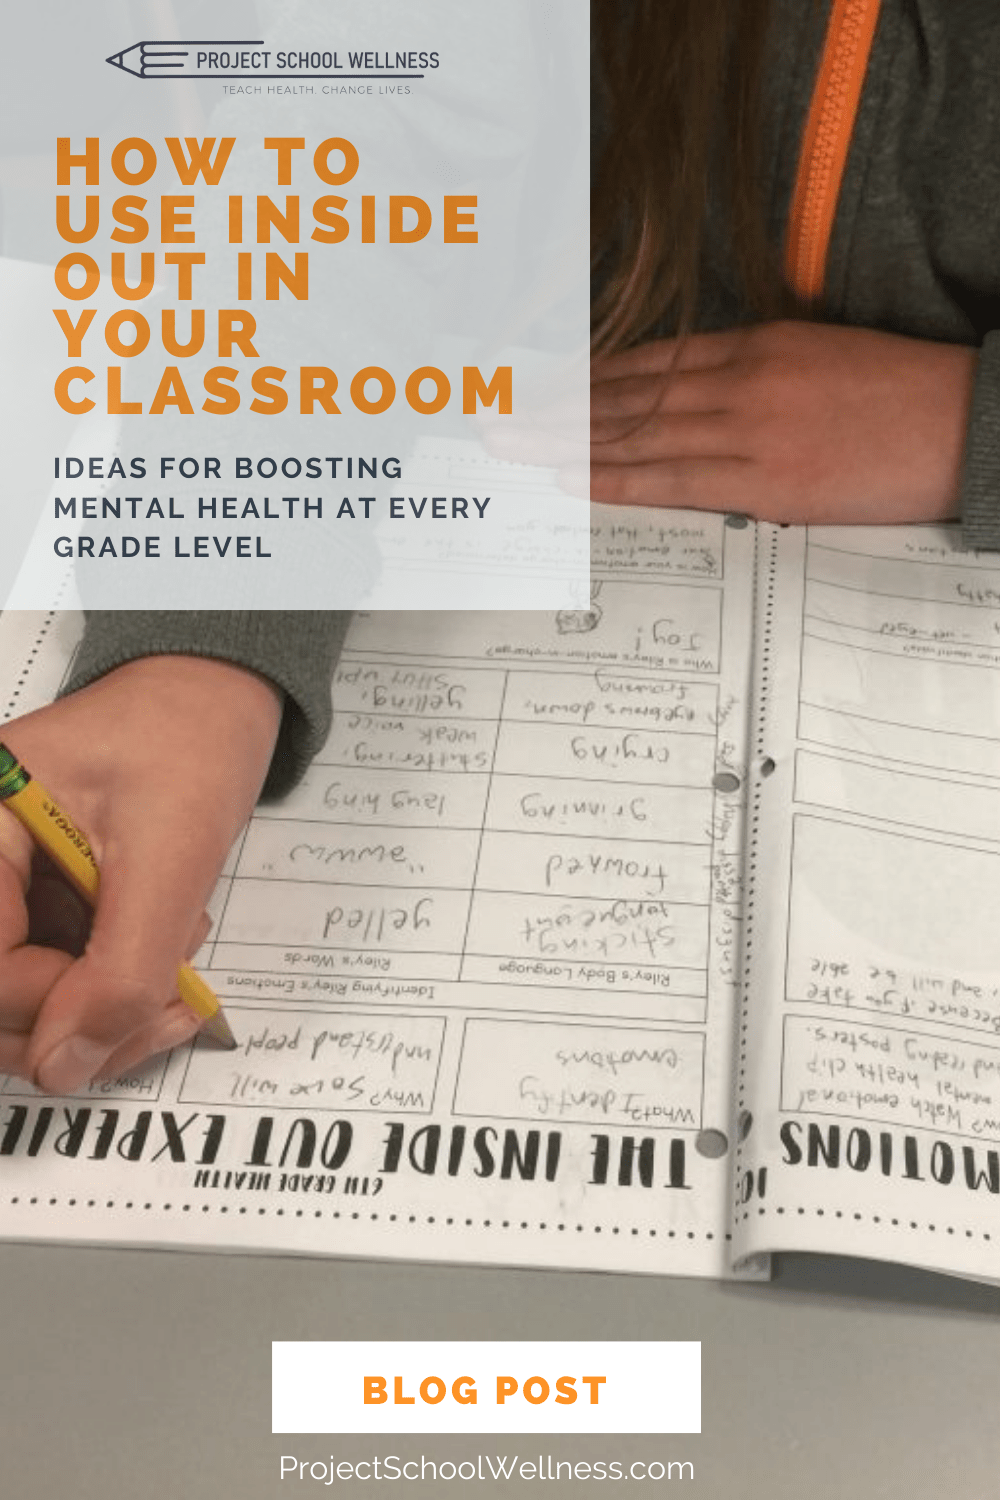 Ideas for Boosting Mental Health at Every Grade Level and how to use Inside Out in your classroom to teach Health Education